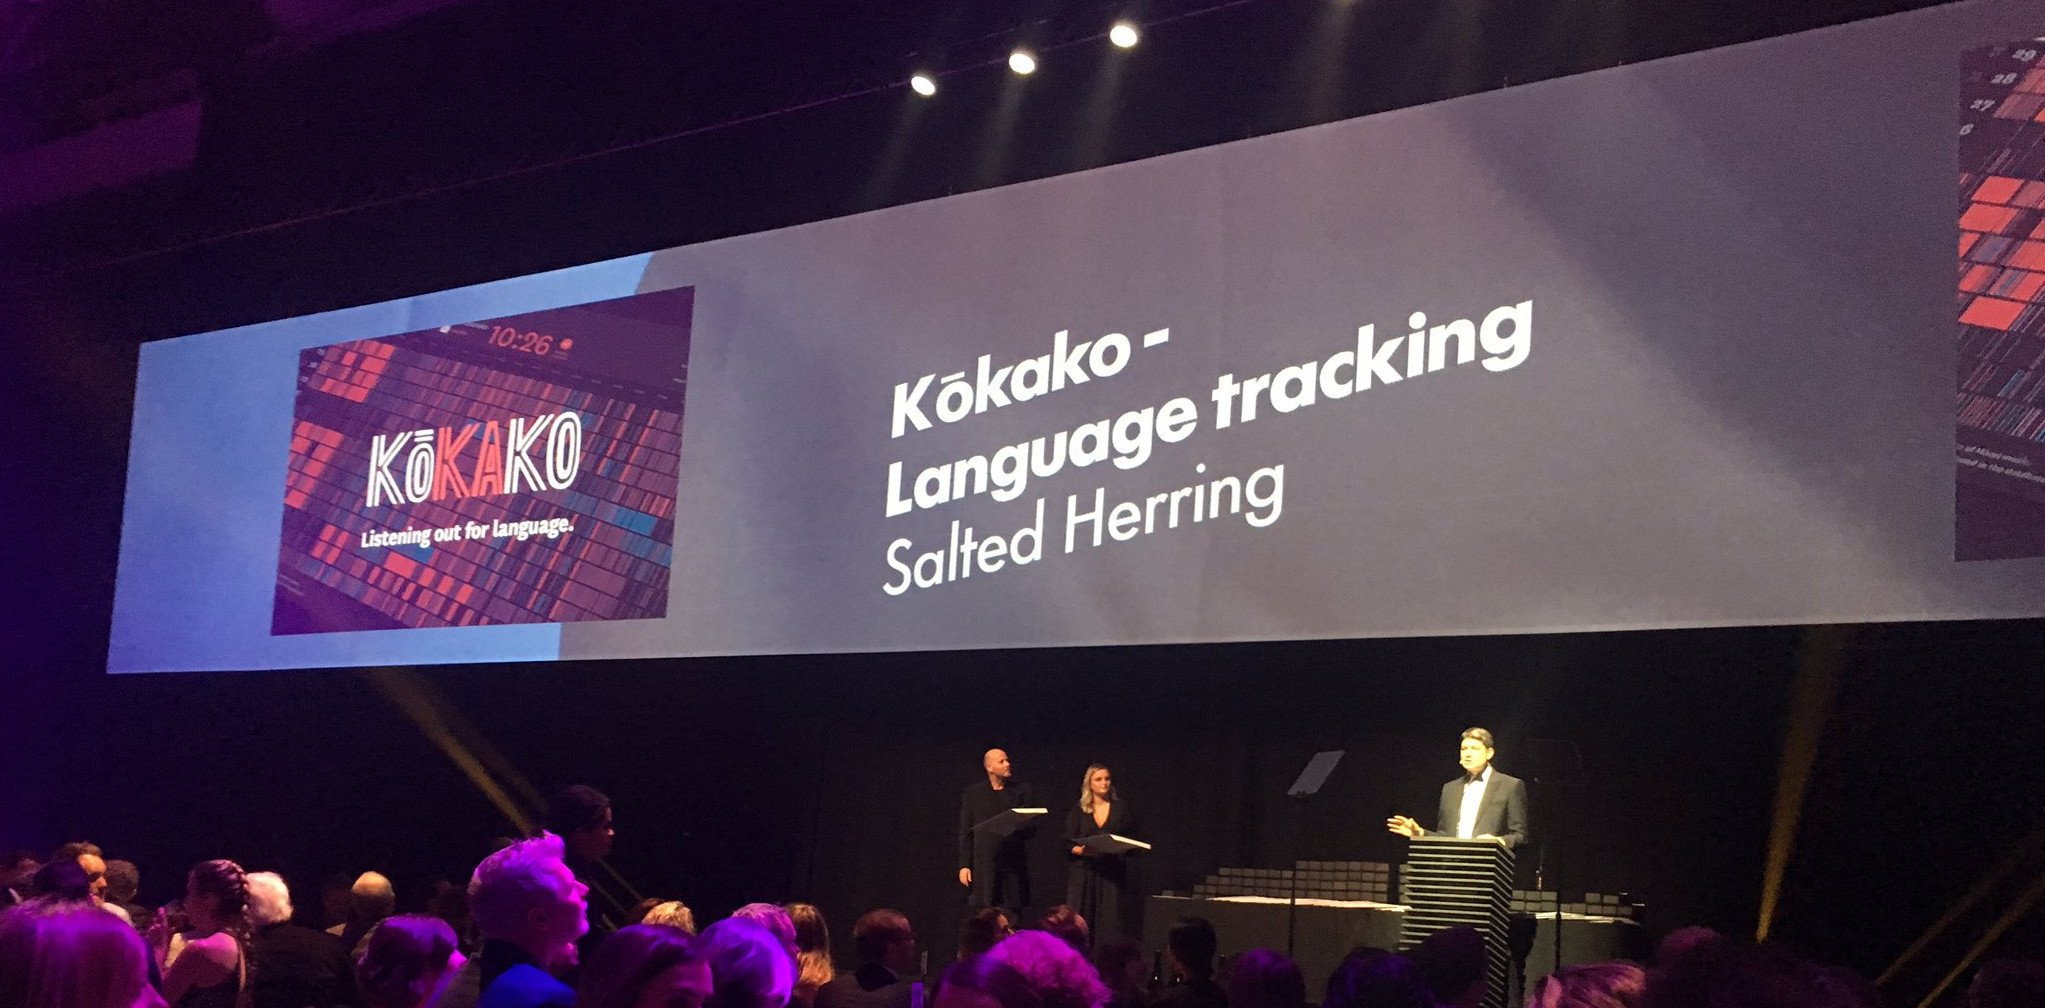 The Kōkako award being announced, photo by Simon Winter of Salted Herring